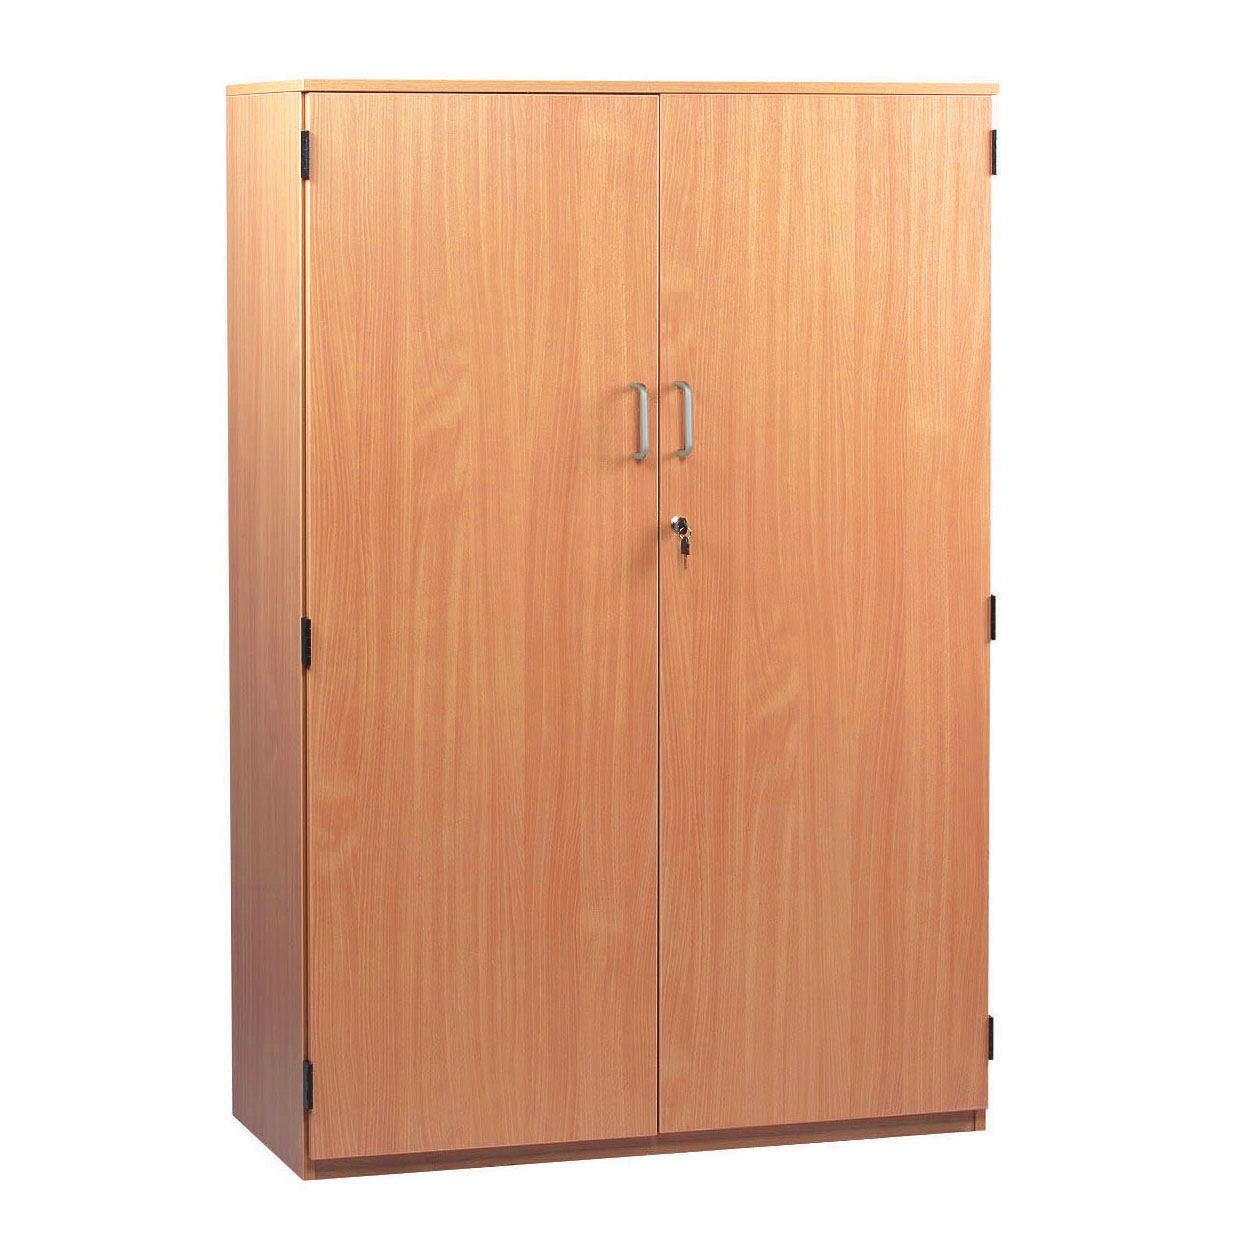 Buy Cupboard Buy School Storage Cupboard Height 1500mm With Lockable